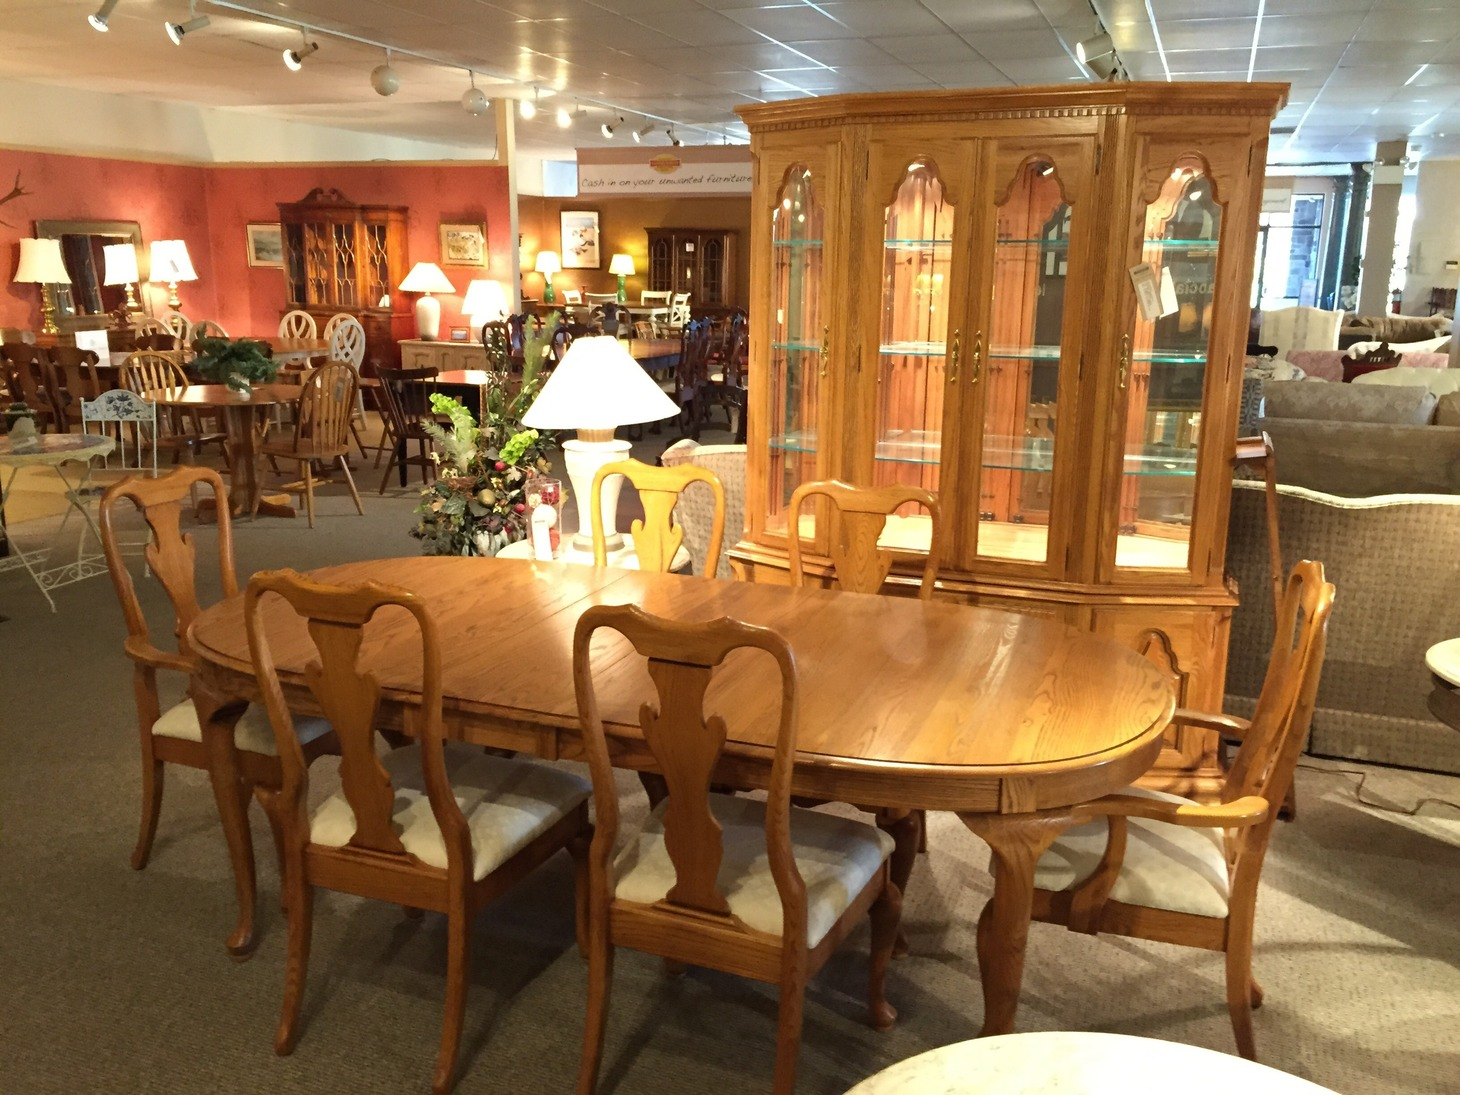 Keller Dining Room Furniture - Keller Oak Dining Room ...